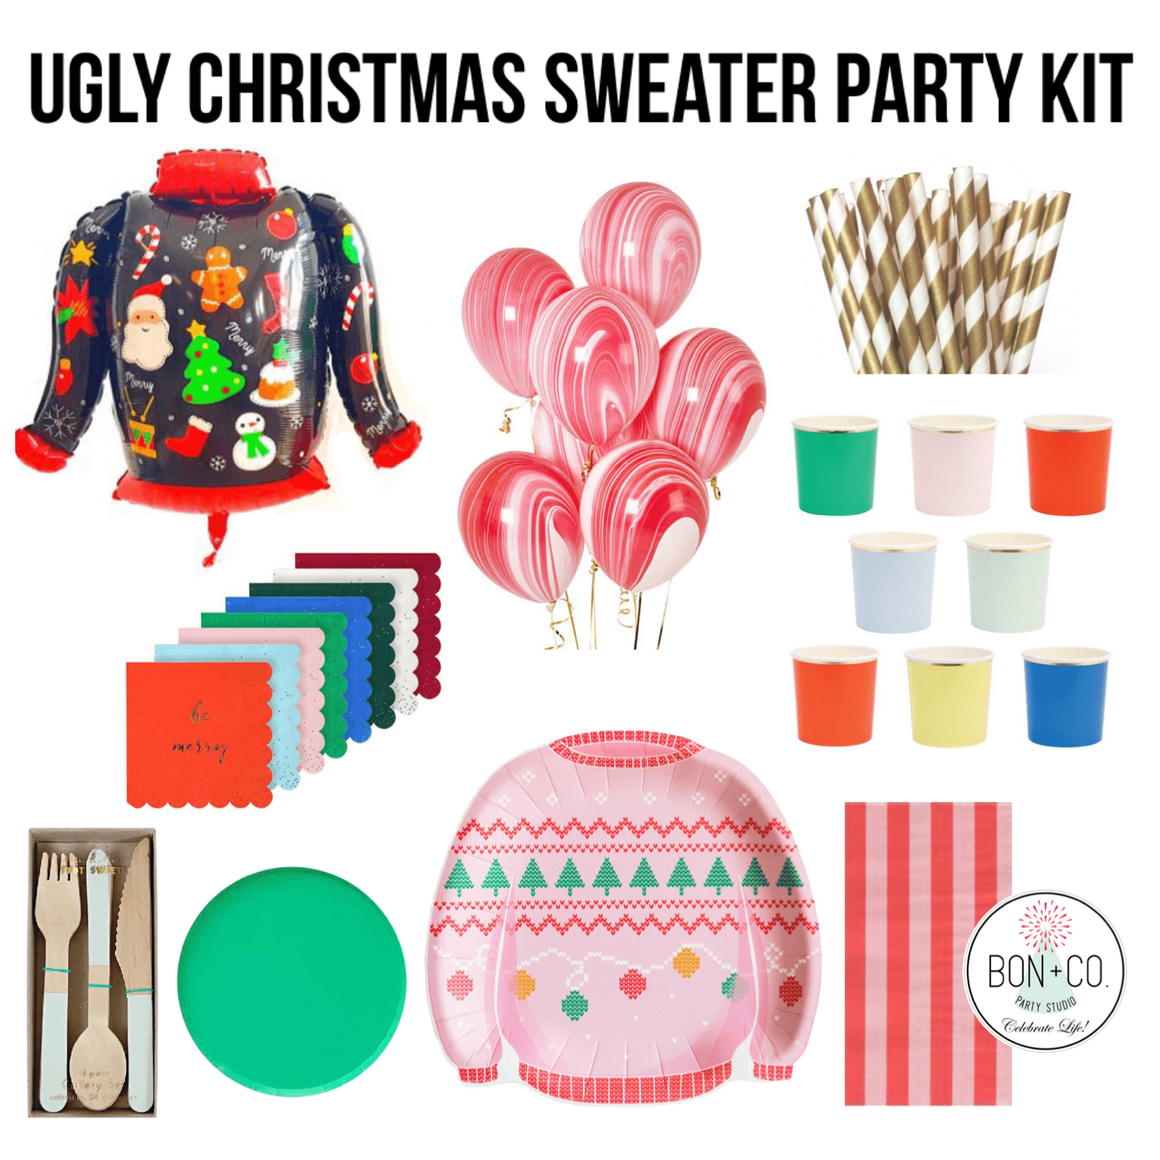 PARTY KIT - UGLY CHRISTMAS SWEATER